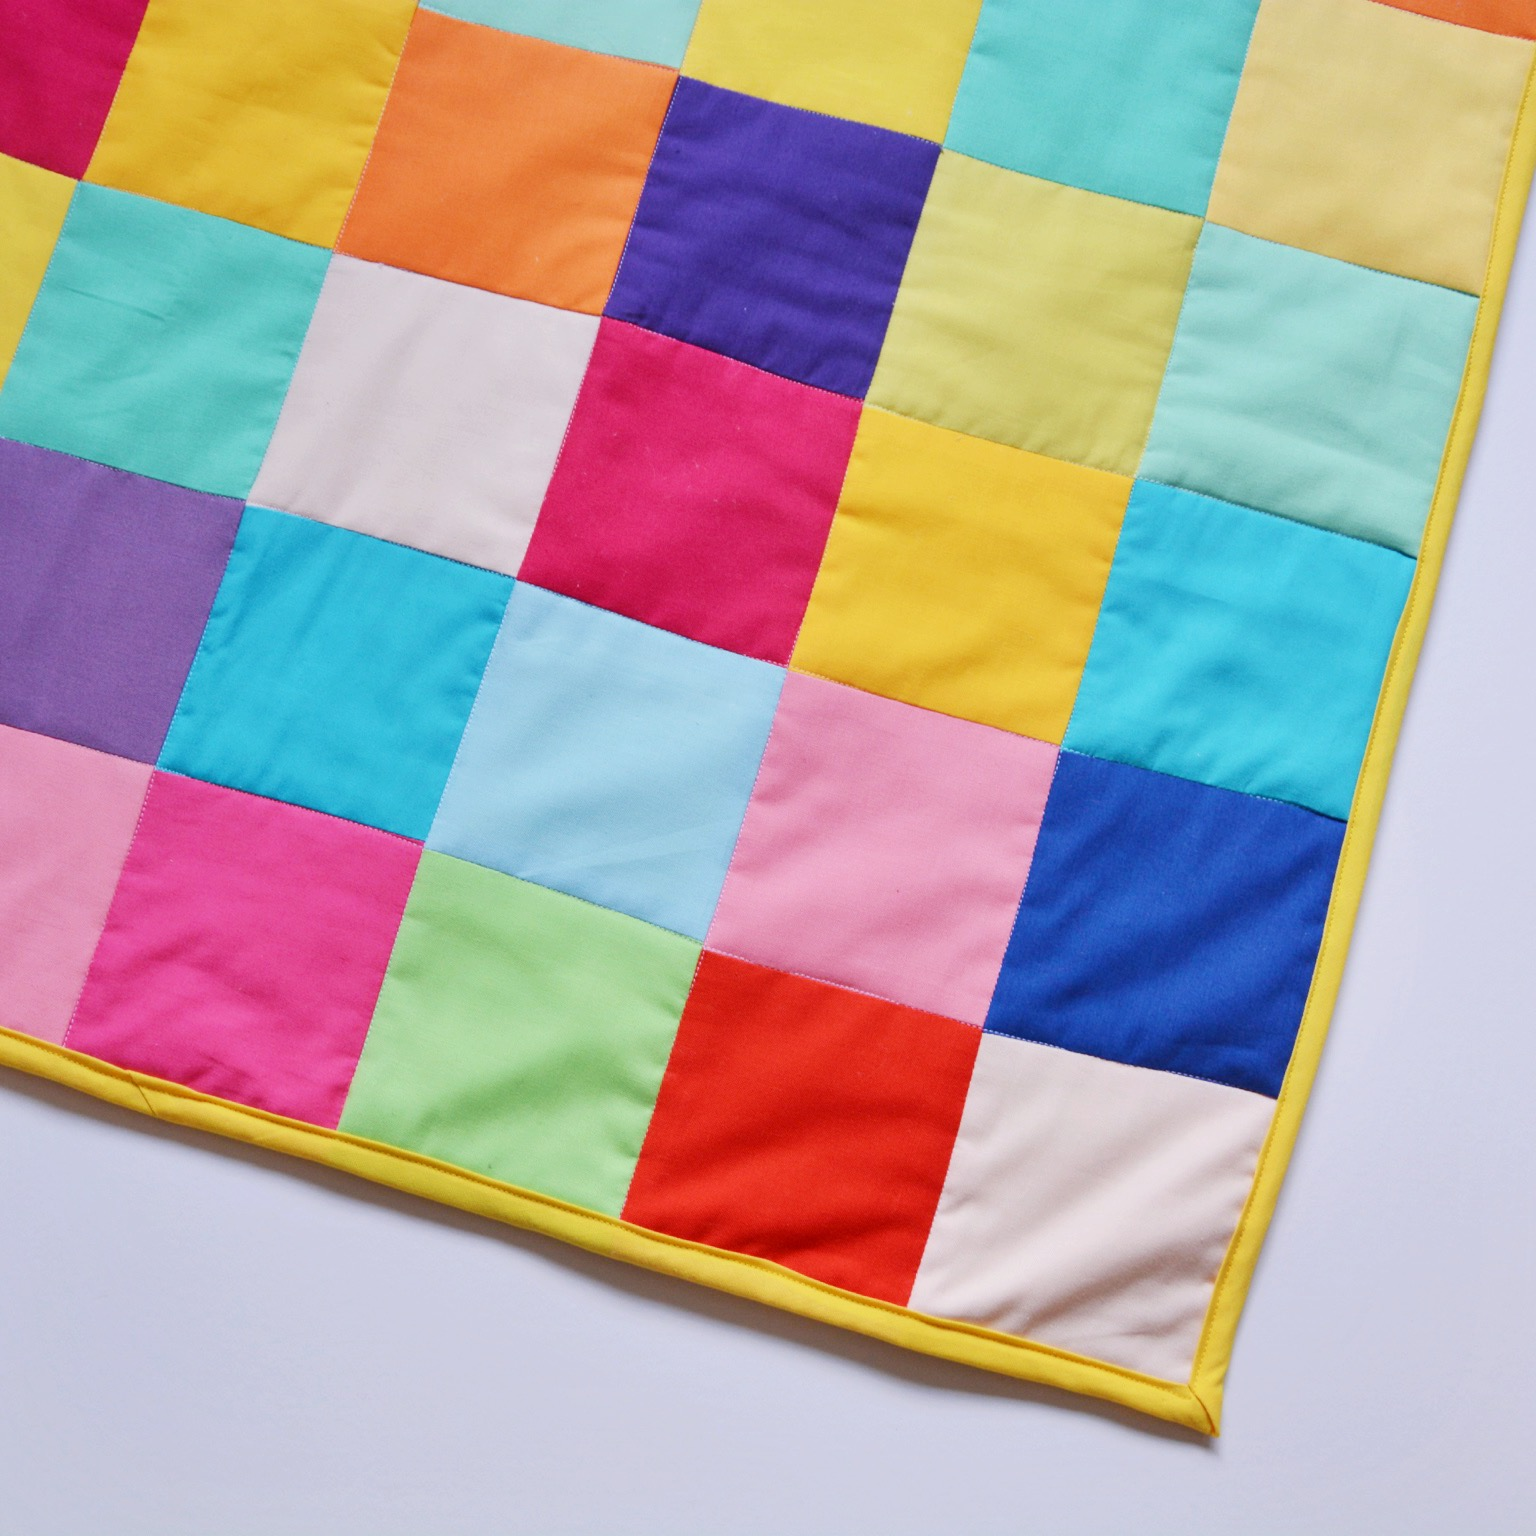 Little One's patchwork quilt | Hello! Hooray!